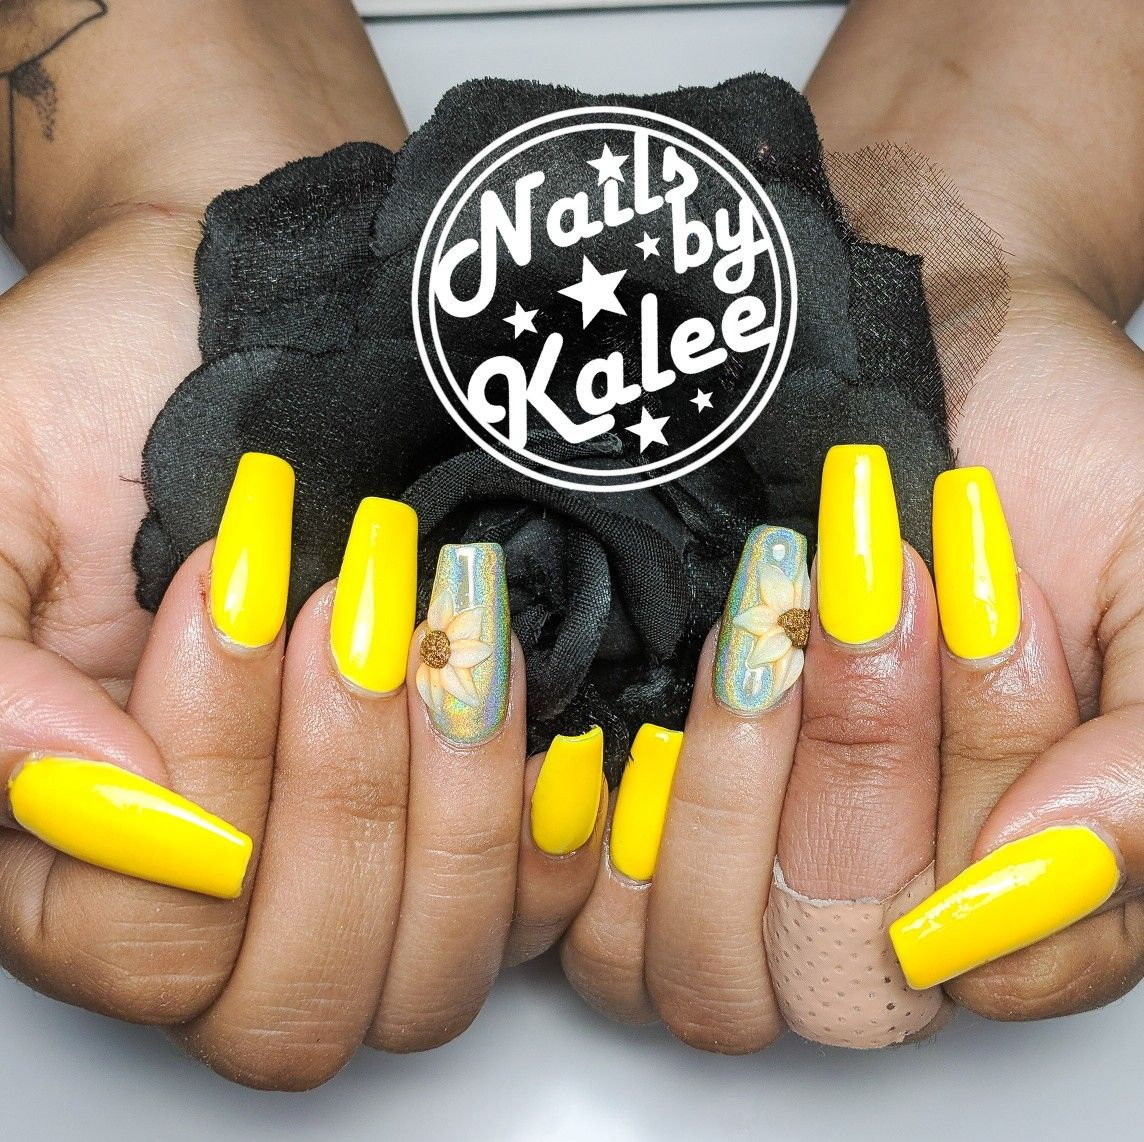 3d sunflowers over Holo nails | Holo nails, Nail designs ...